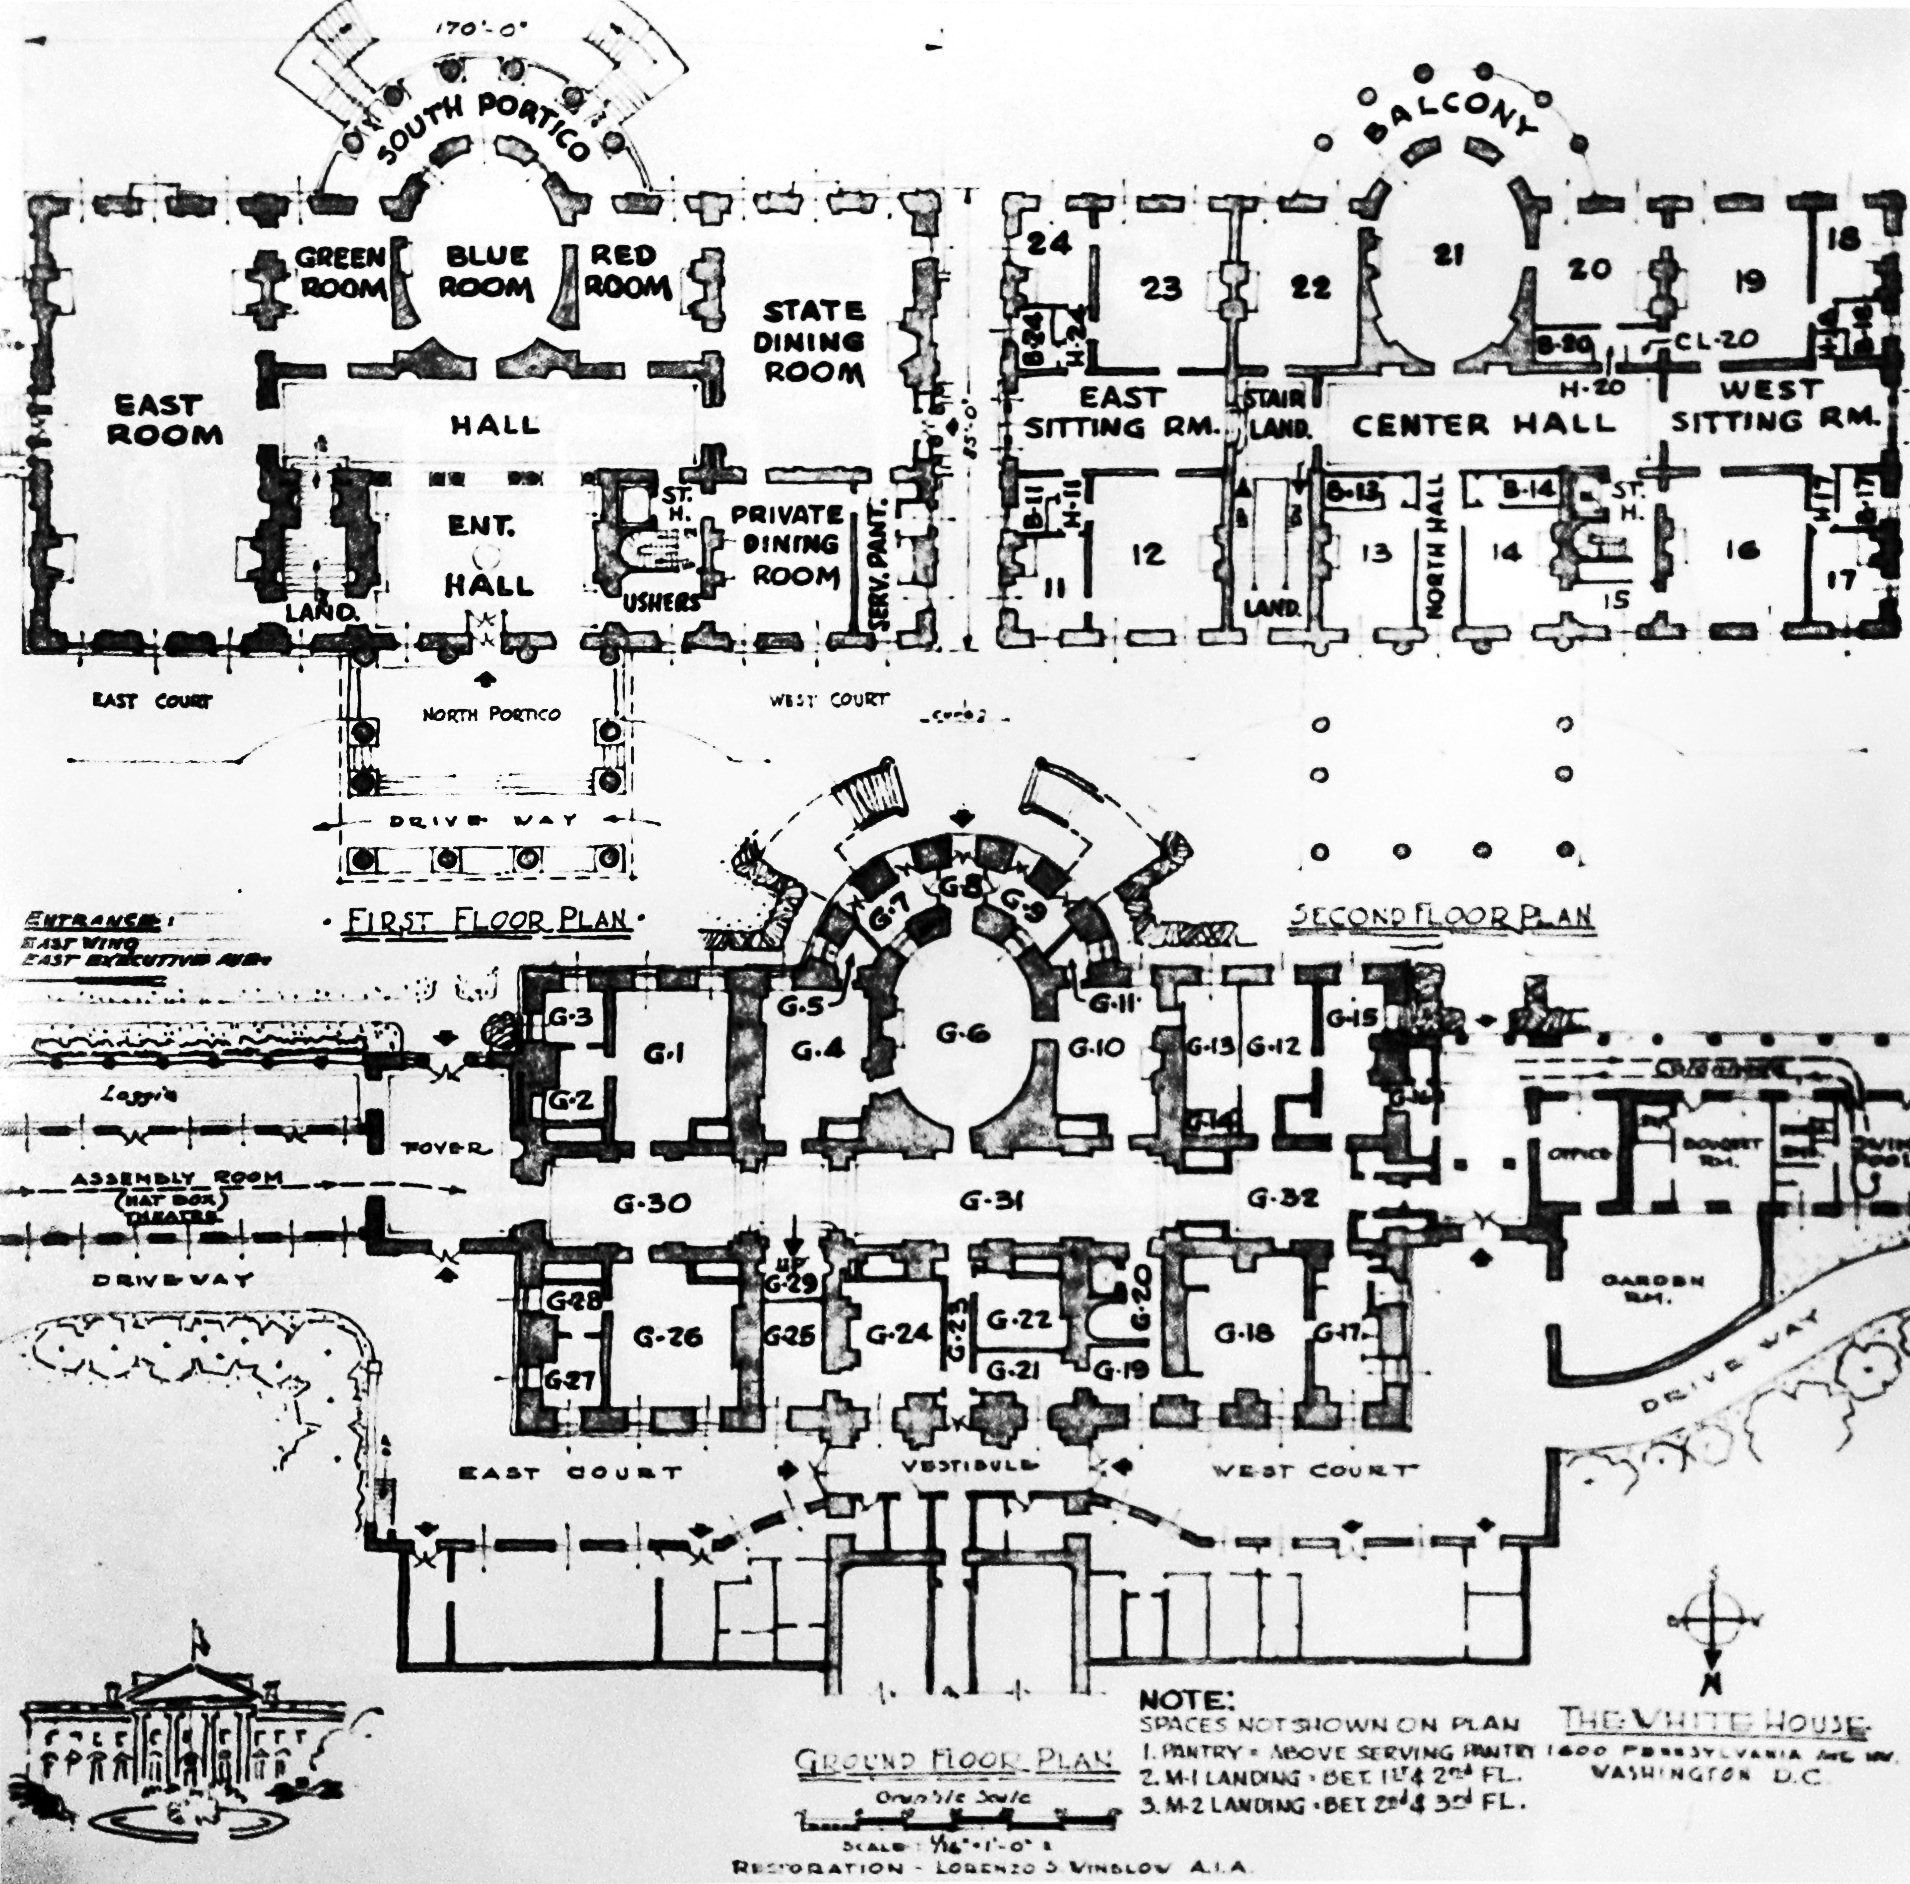 Marvelous White House Floor Plan    Lorenzo Winslowu0027s Circa 1947 Plan For Changes To The  White House, Close To The Actual Implementation